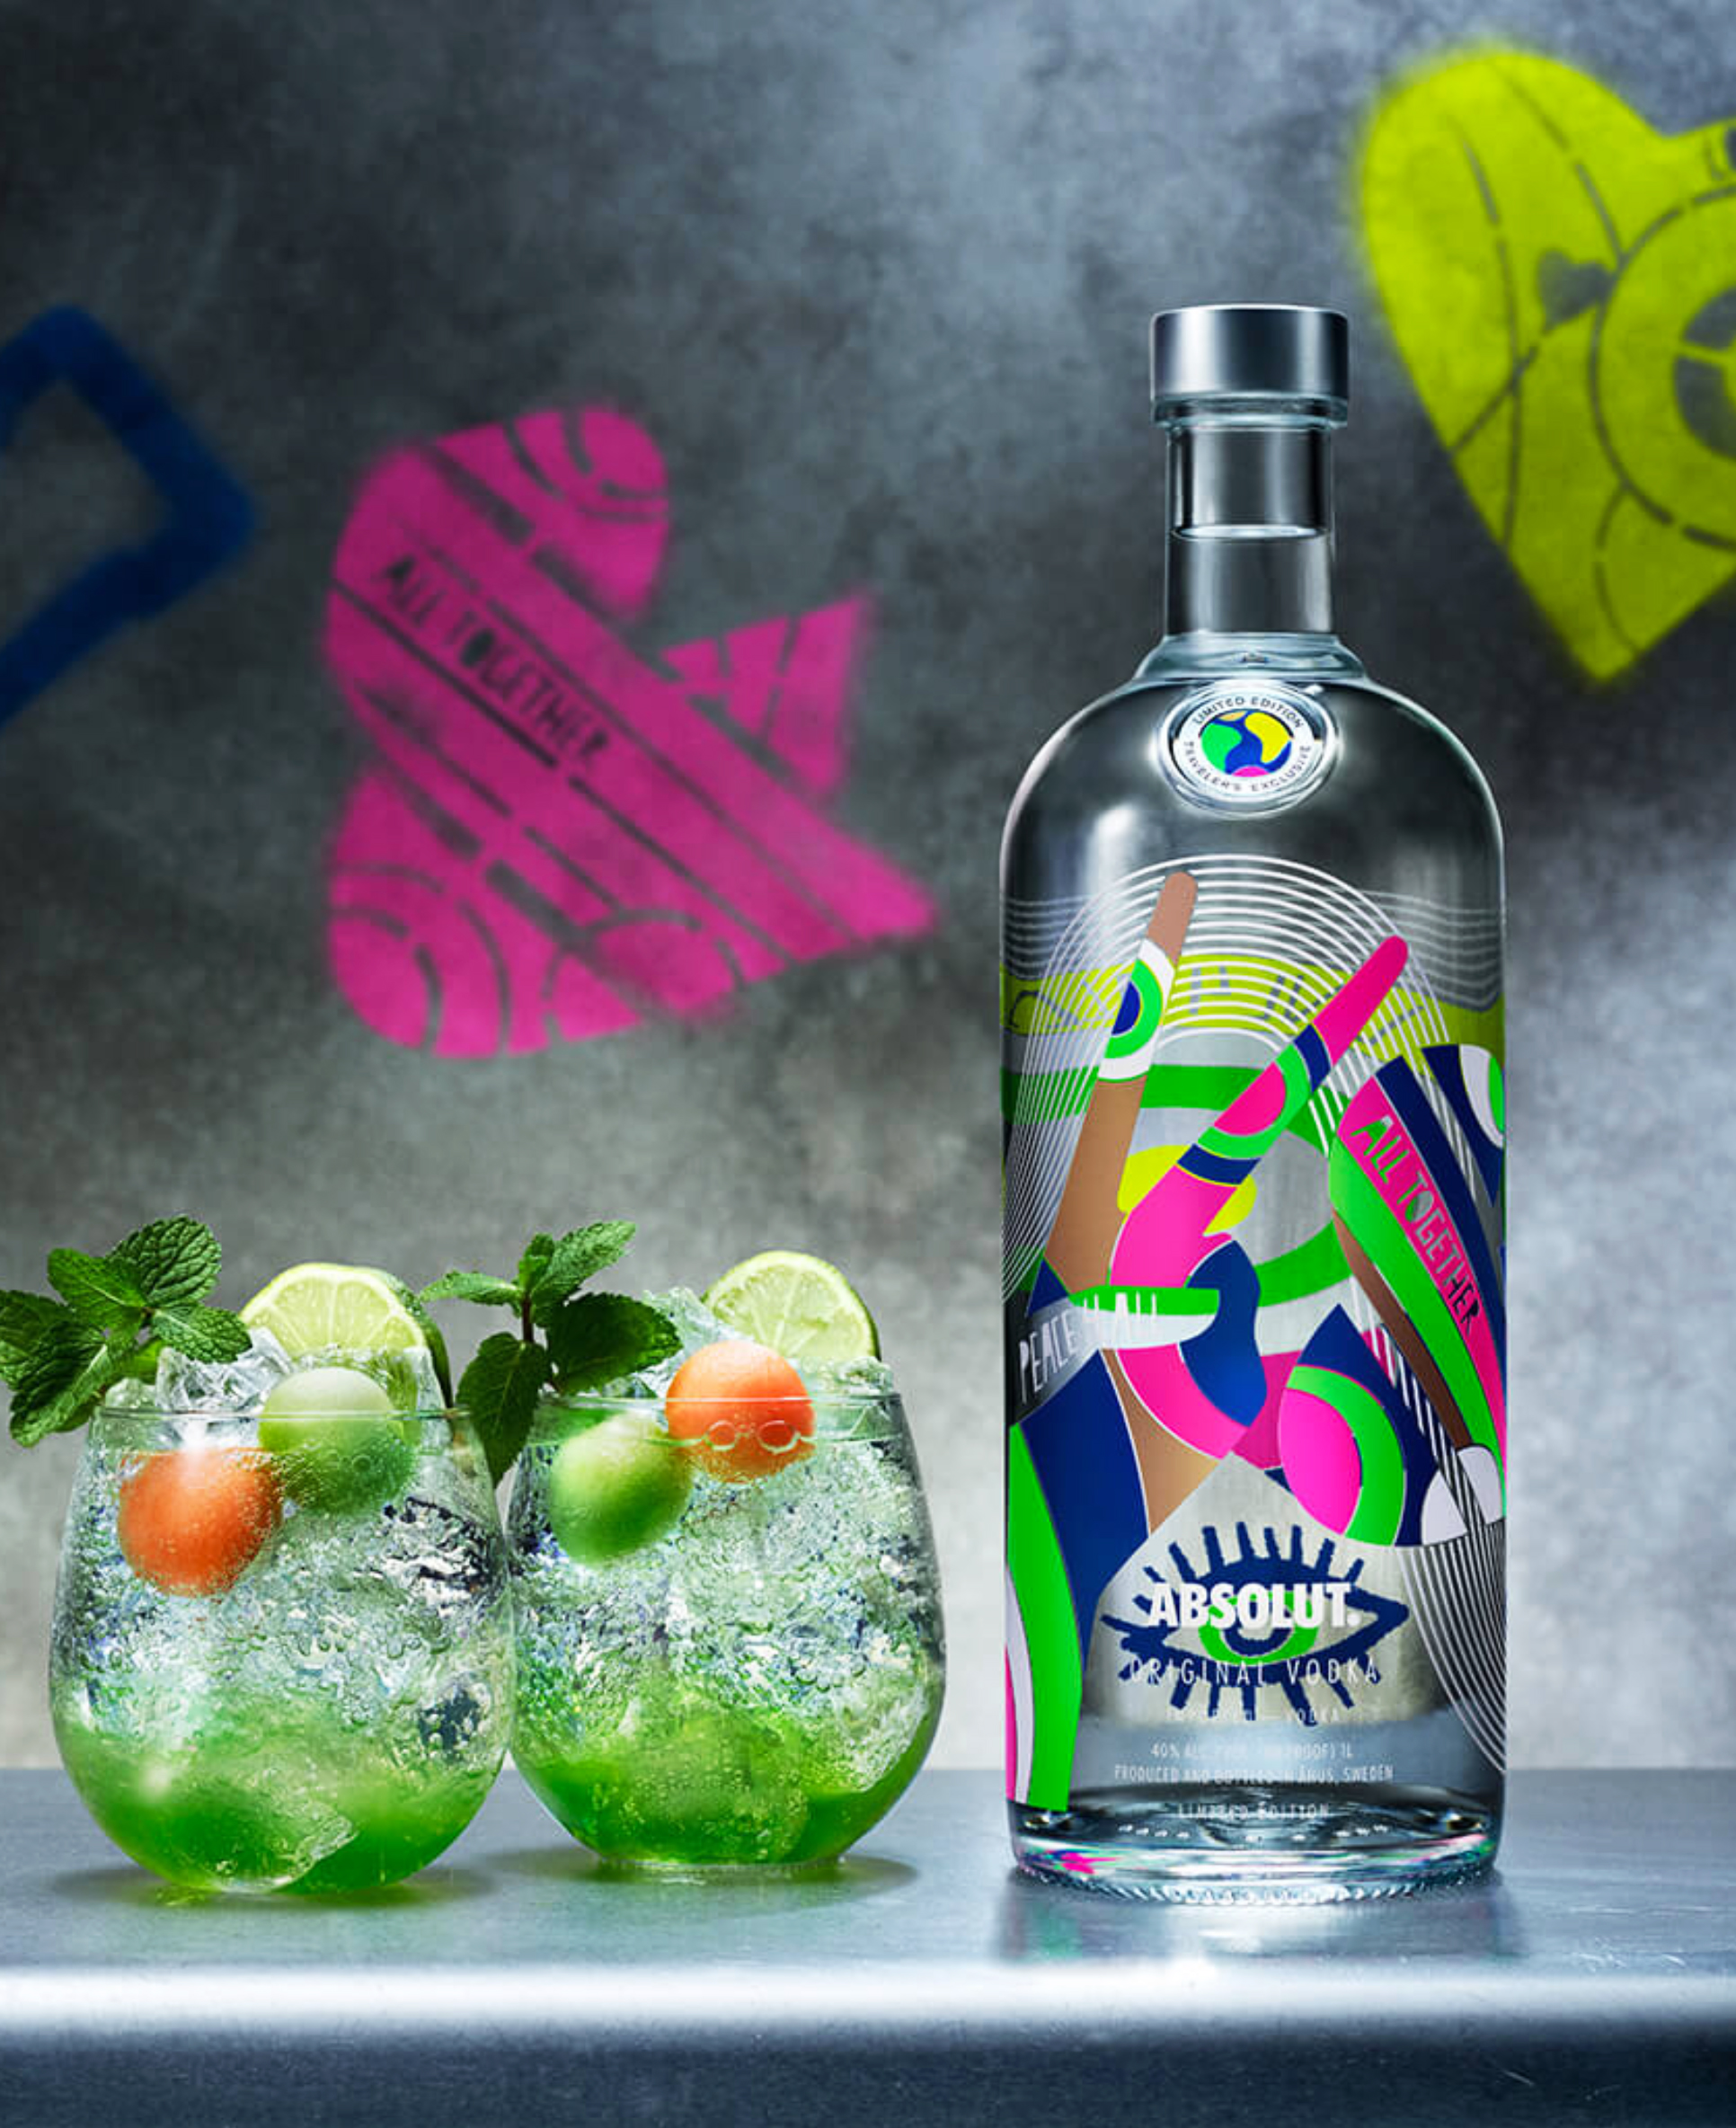 Absolut Limited Edition 2018